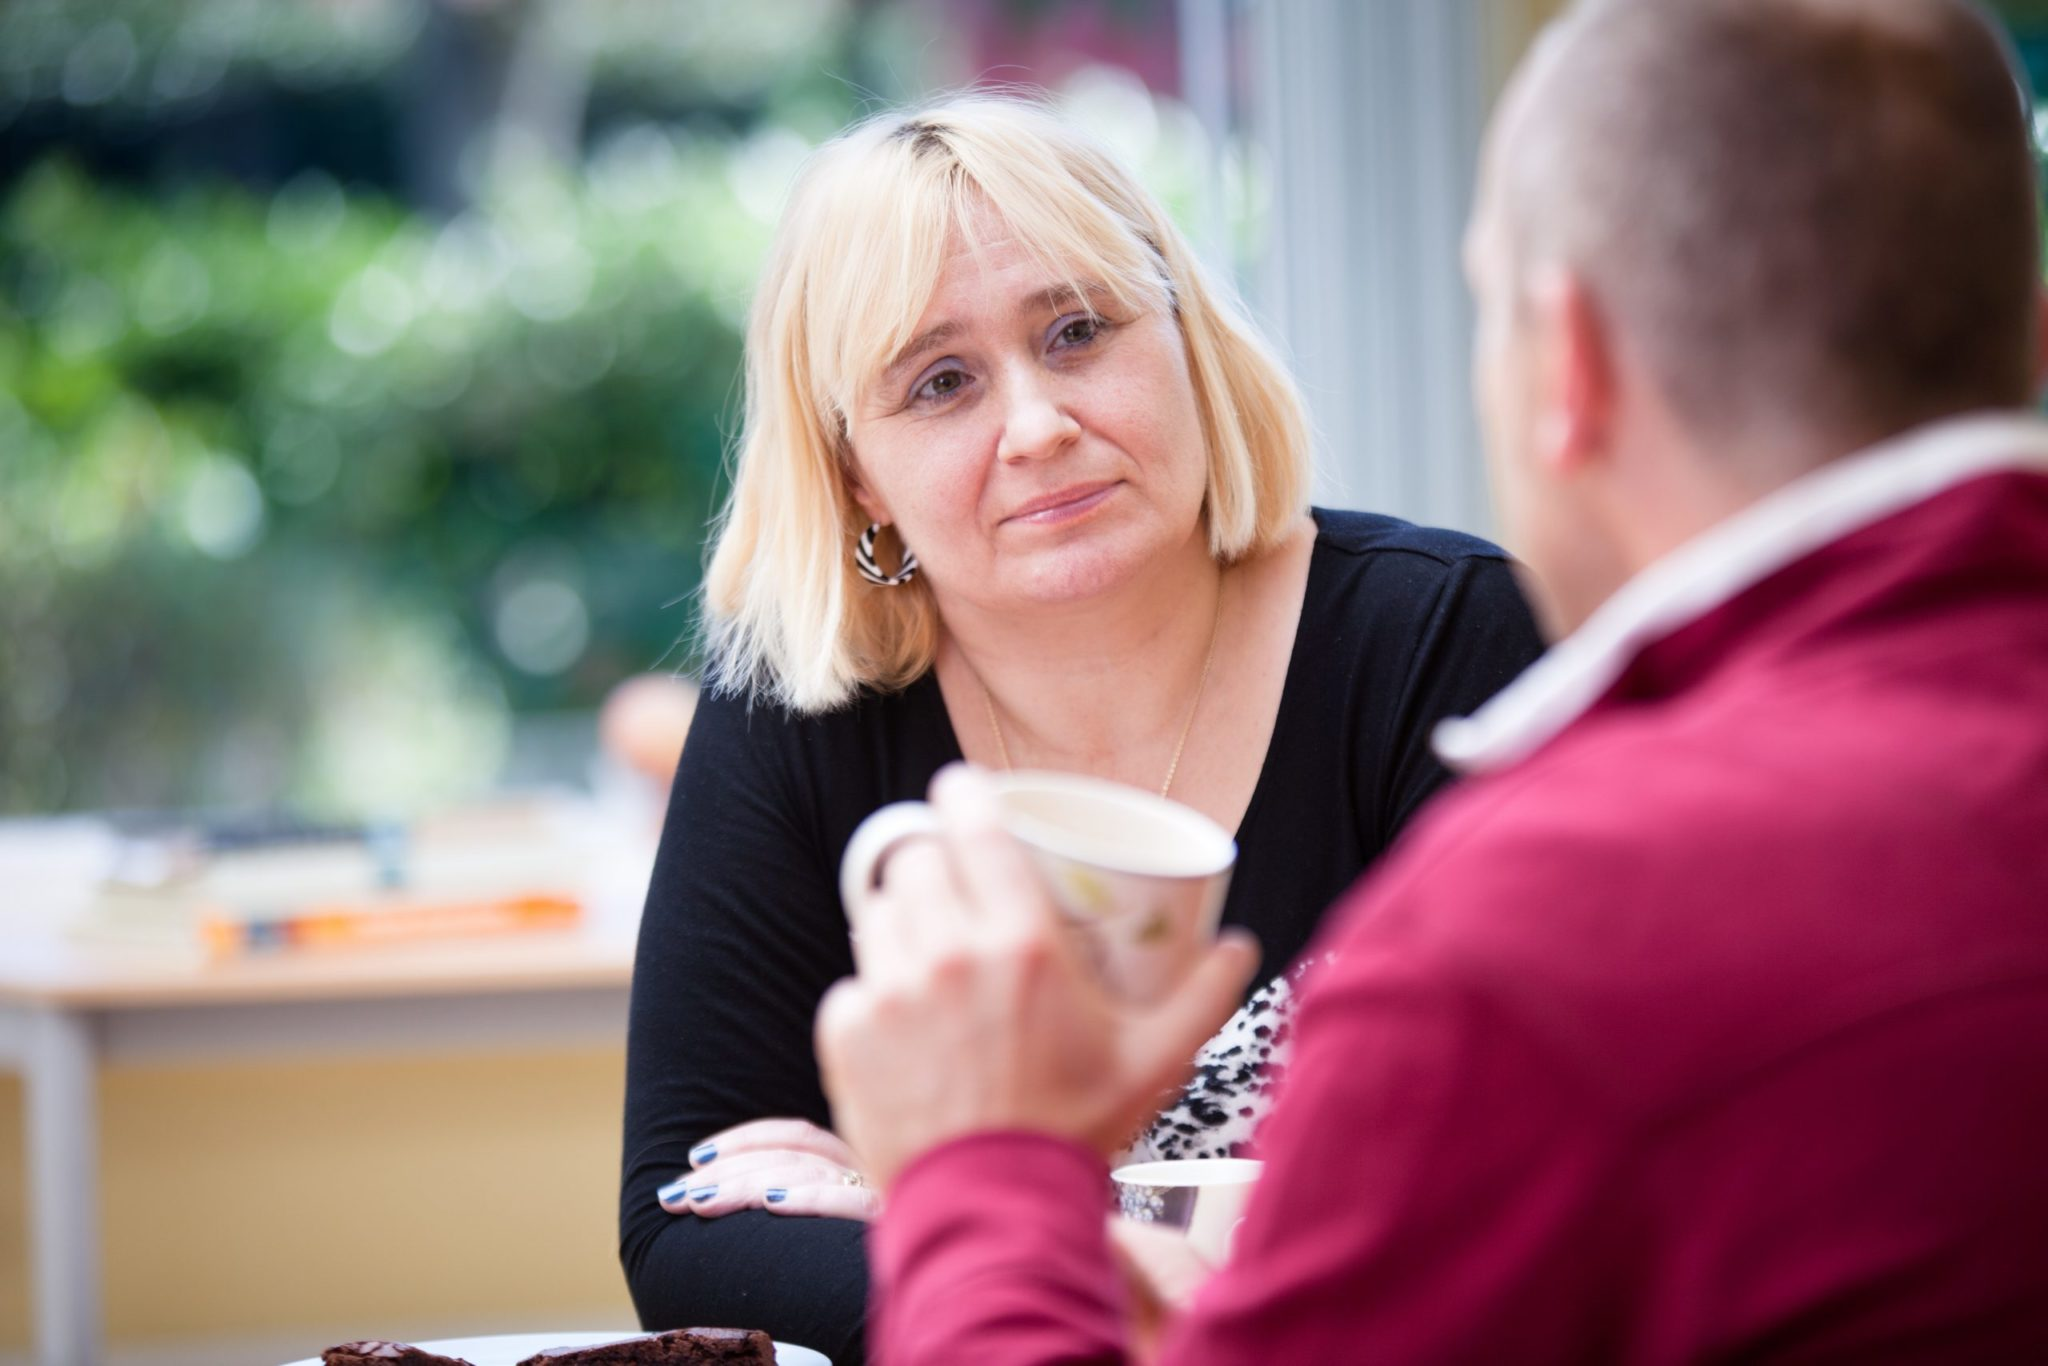 PRESS RELEASE: New Mental Health Support Service Launches At Parkstone GP Practice